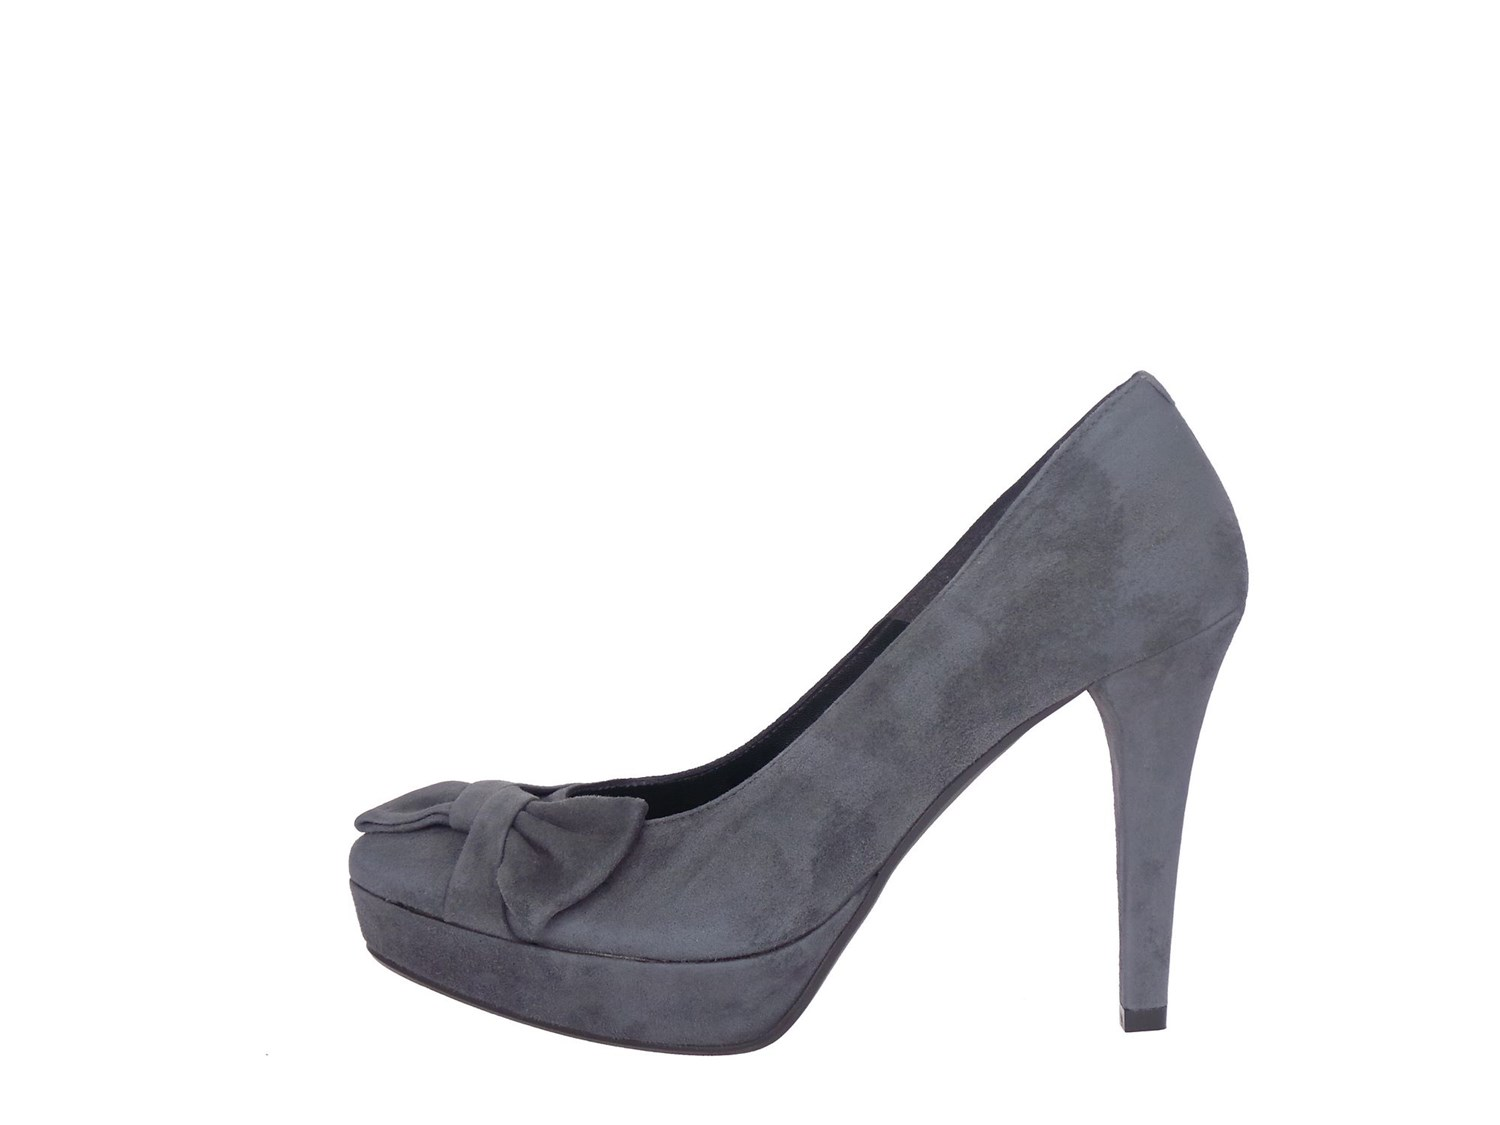 Silvana 4025 Grey Shoes Women Heels'